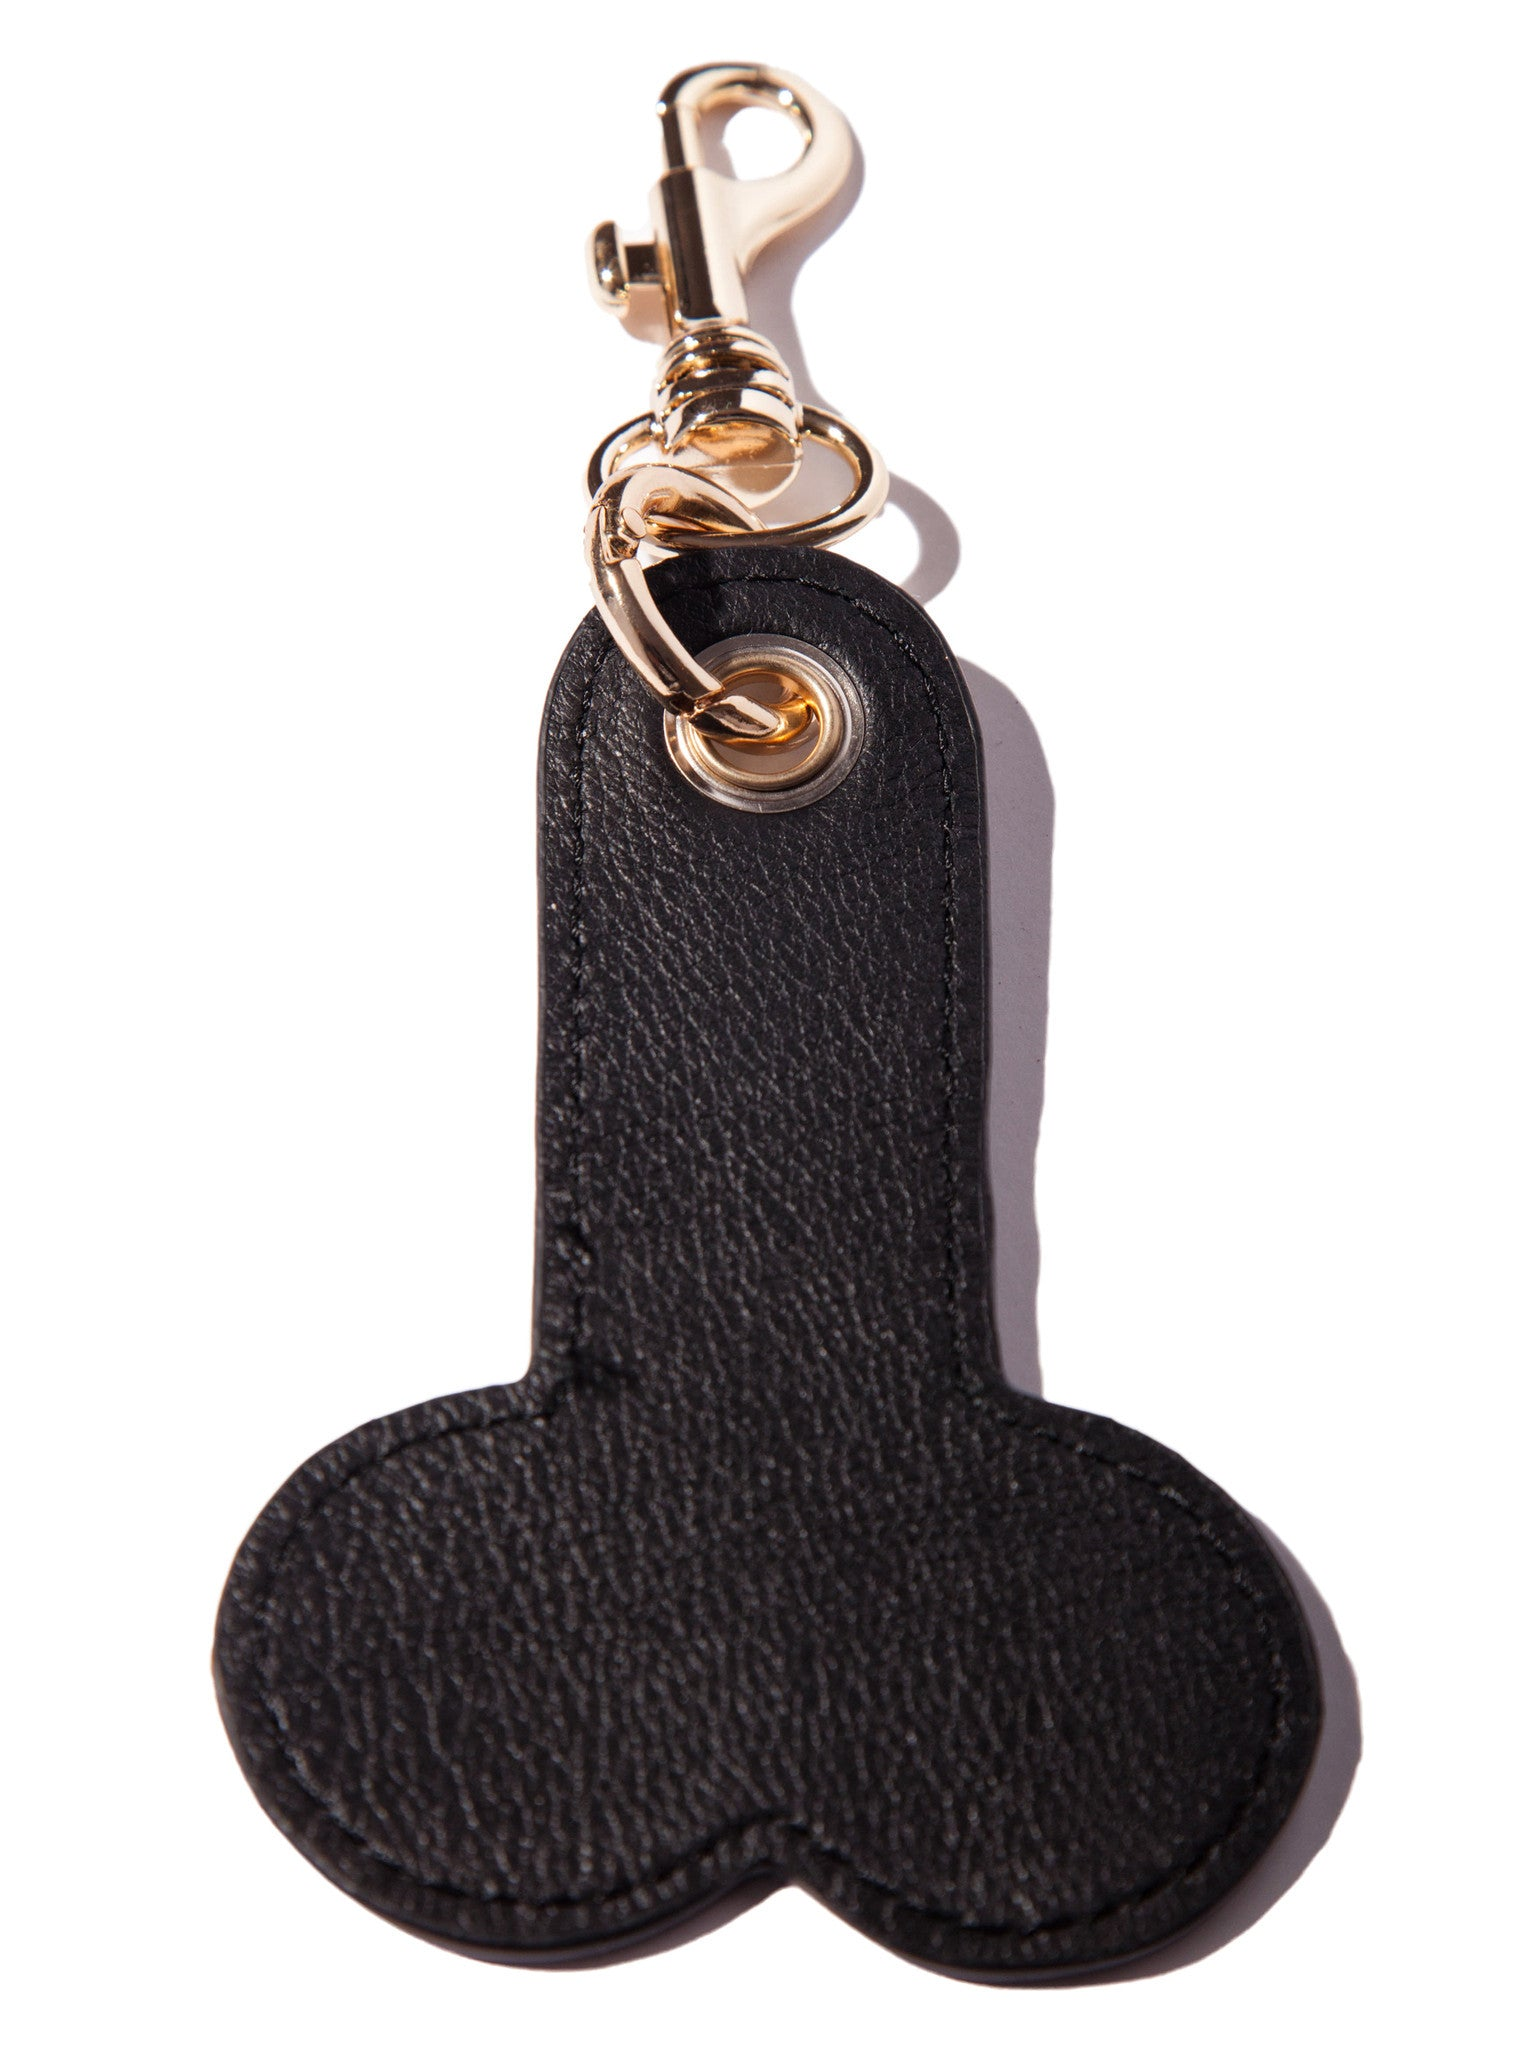 Black Key Ring 3